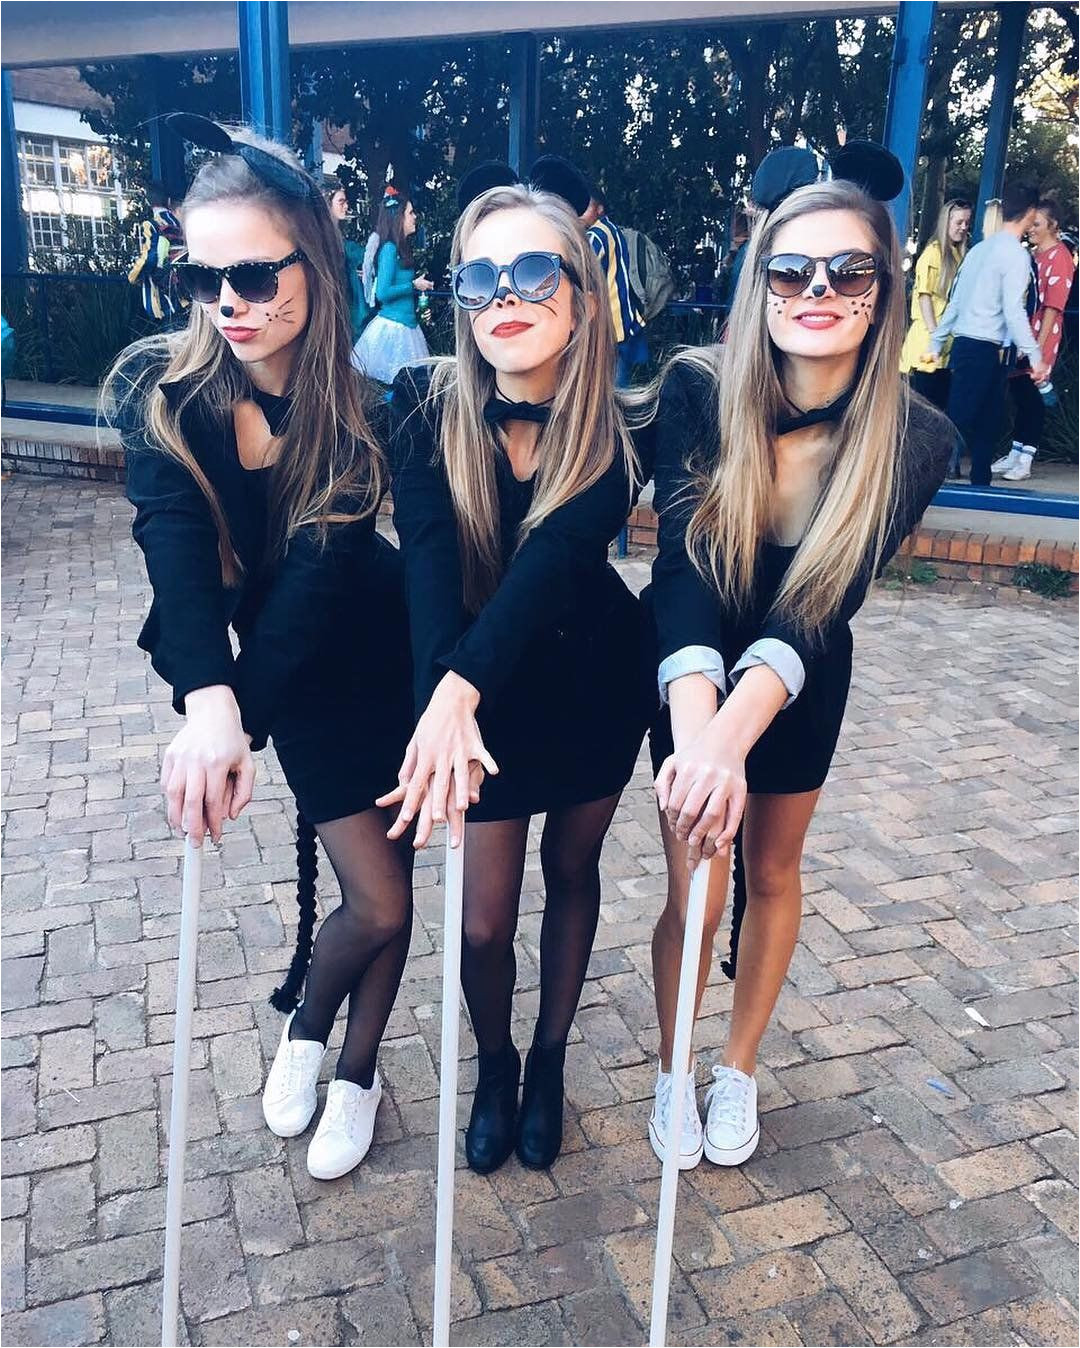 3 of a kind 21 trio costumes to wear with your best friends